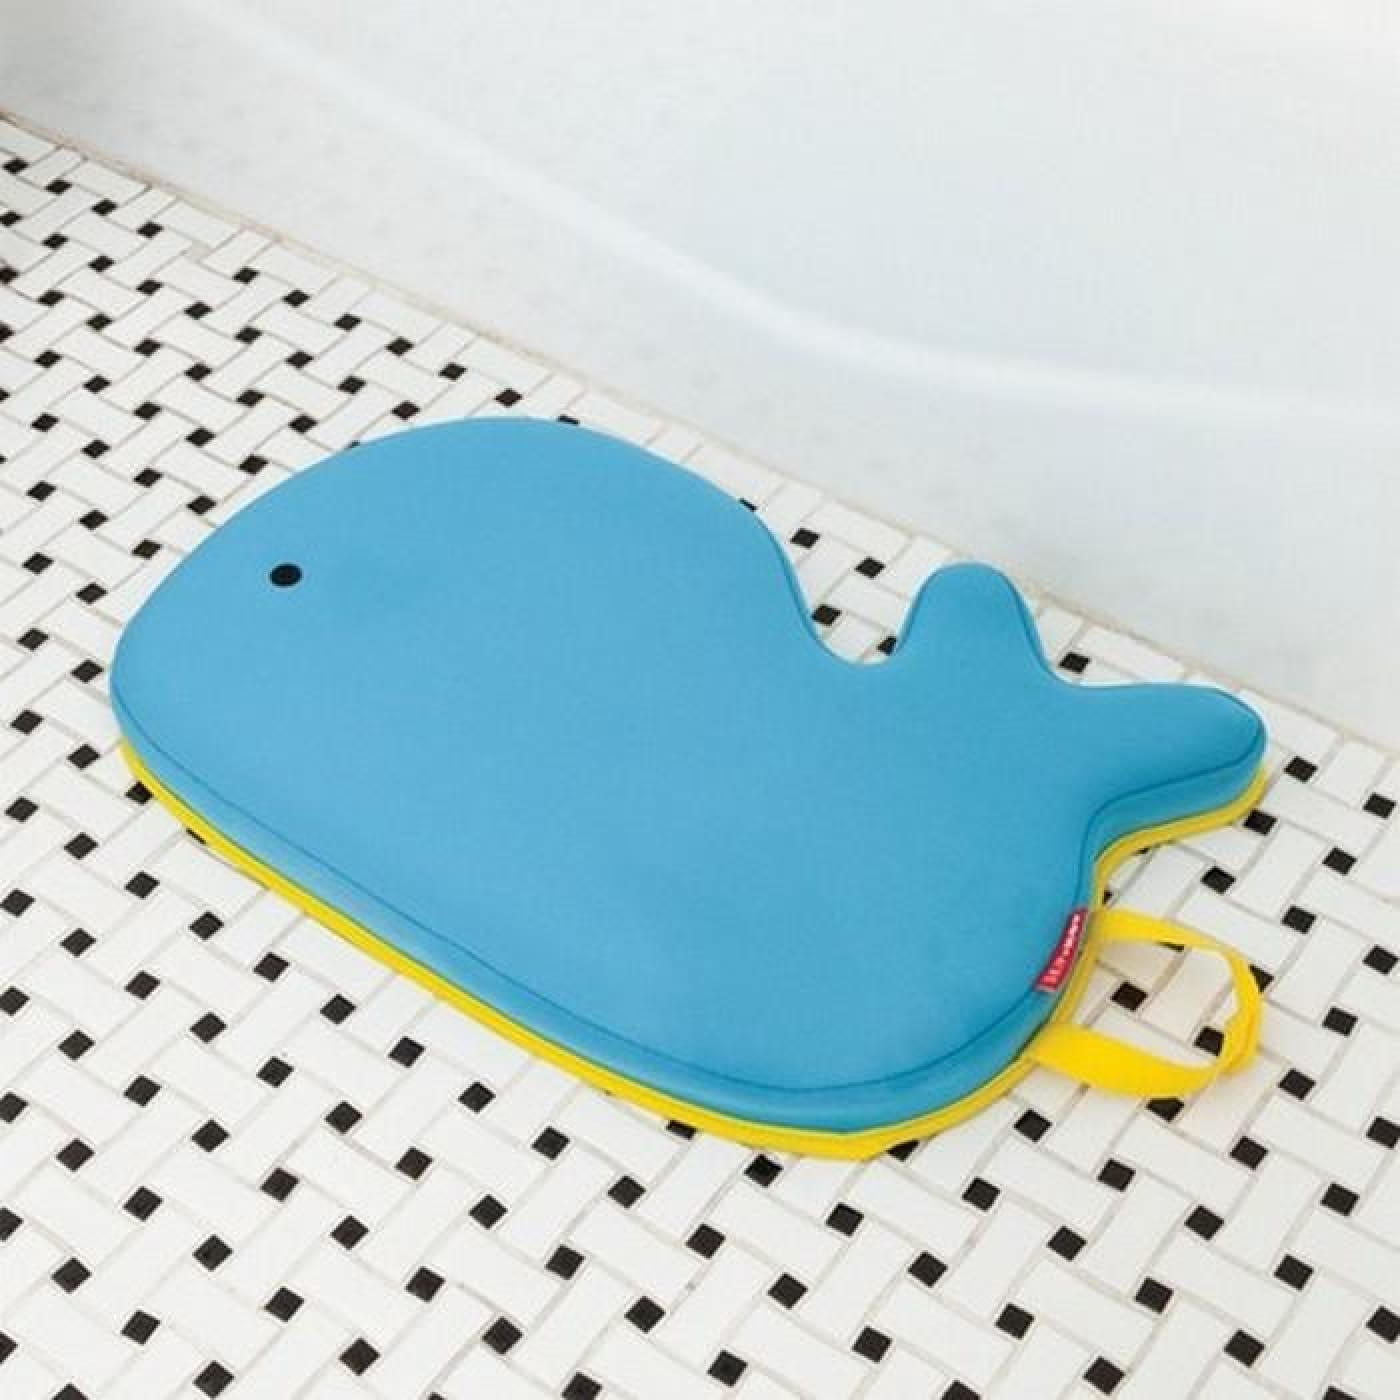 Skip Hop Moby Bath Kneeler - Blue - BATHTIME & CHANGING - BATH TOYS/AIDS